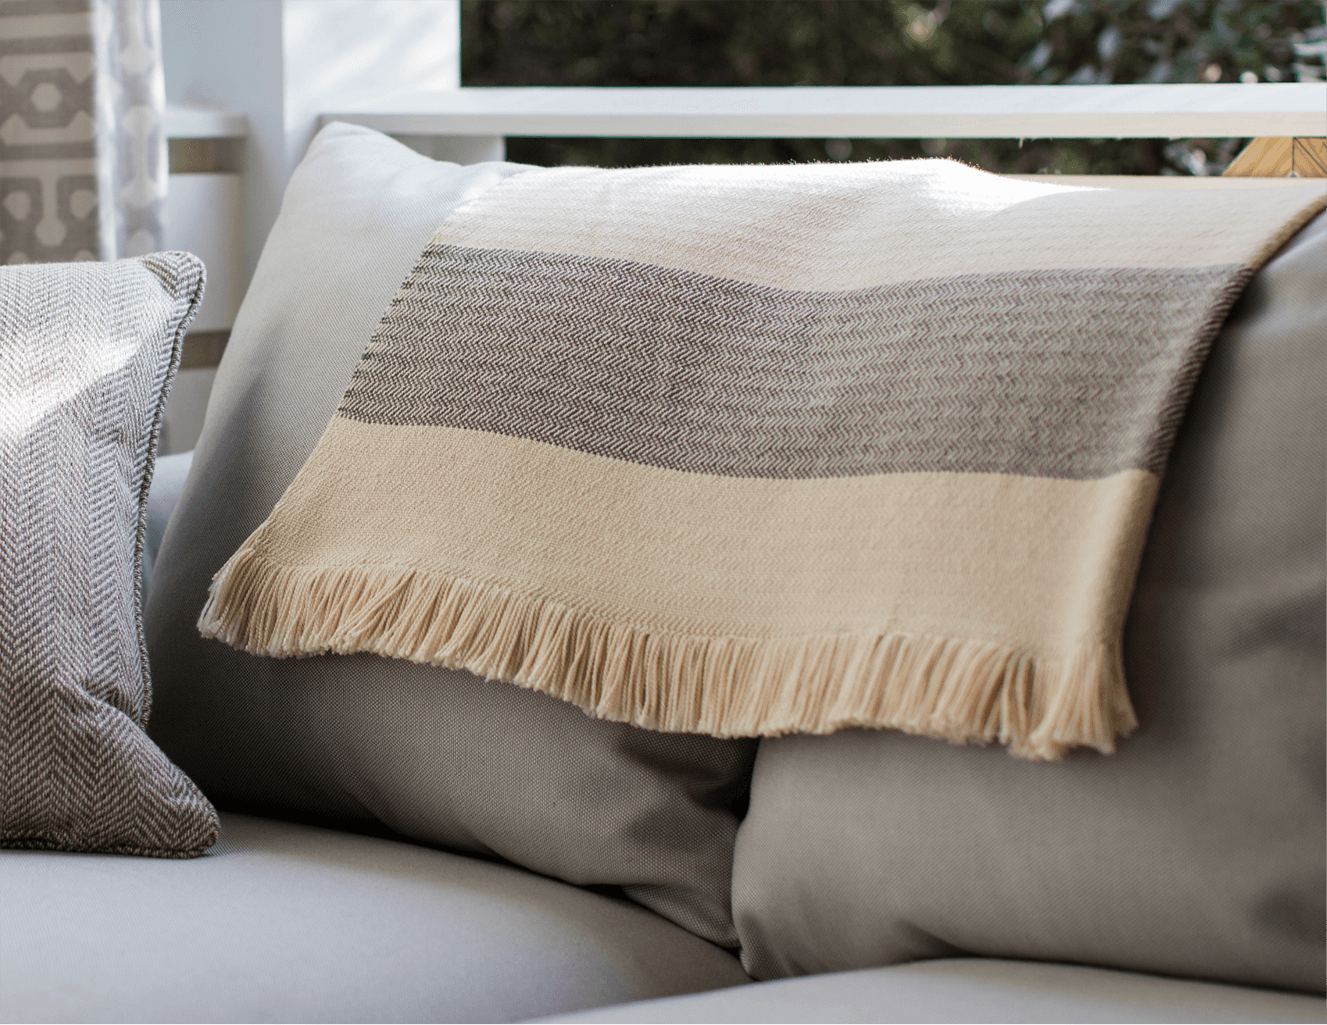 A Beige Sunbrella Throw with Grey Detail draped over a grey sofa